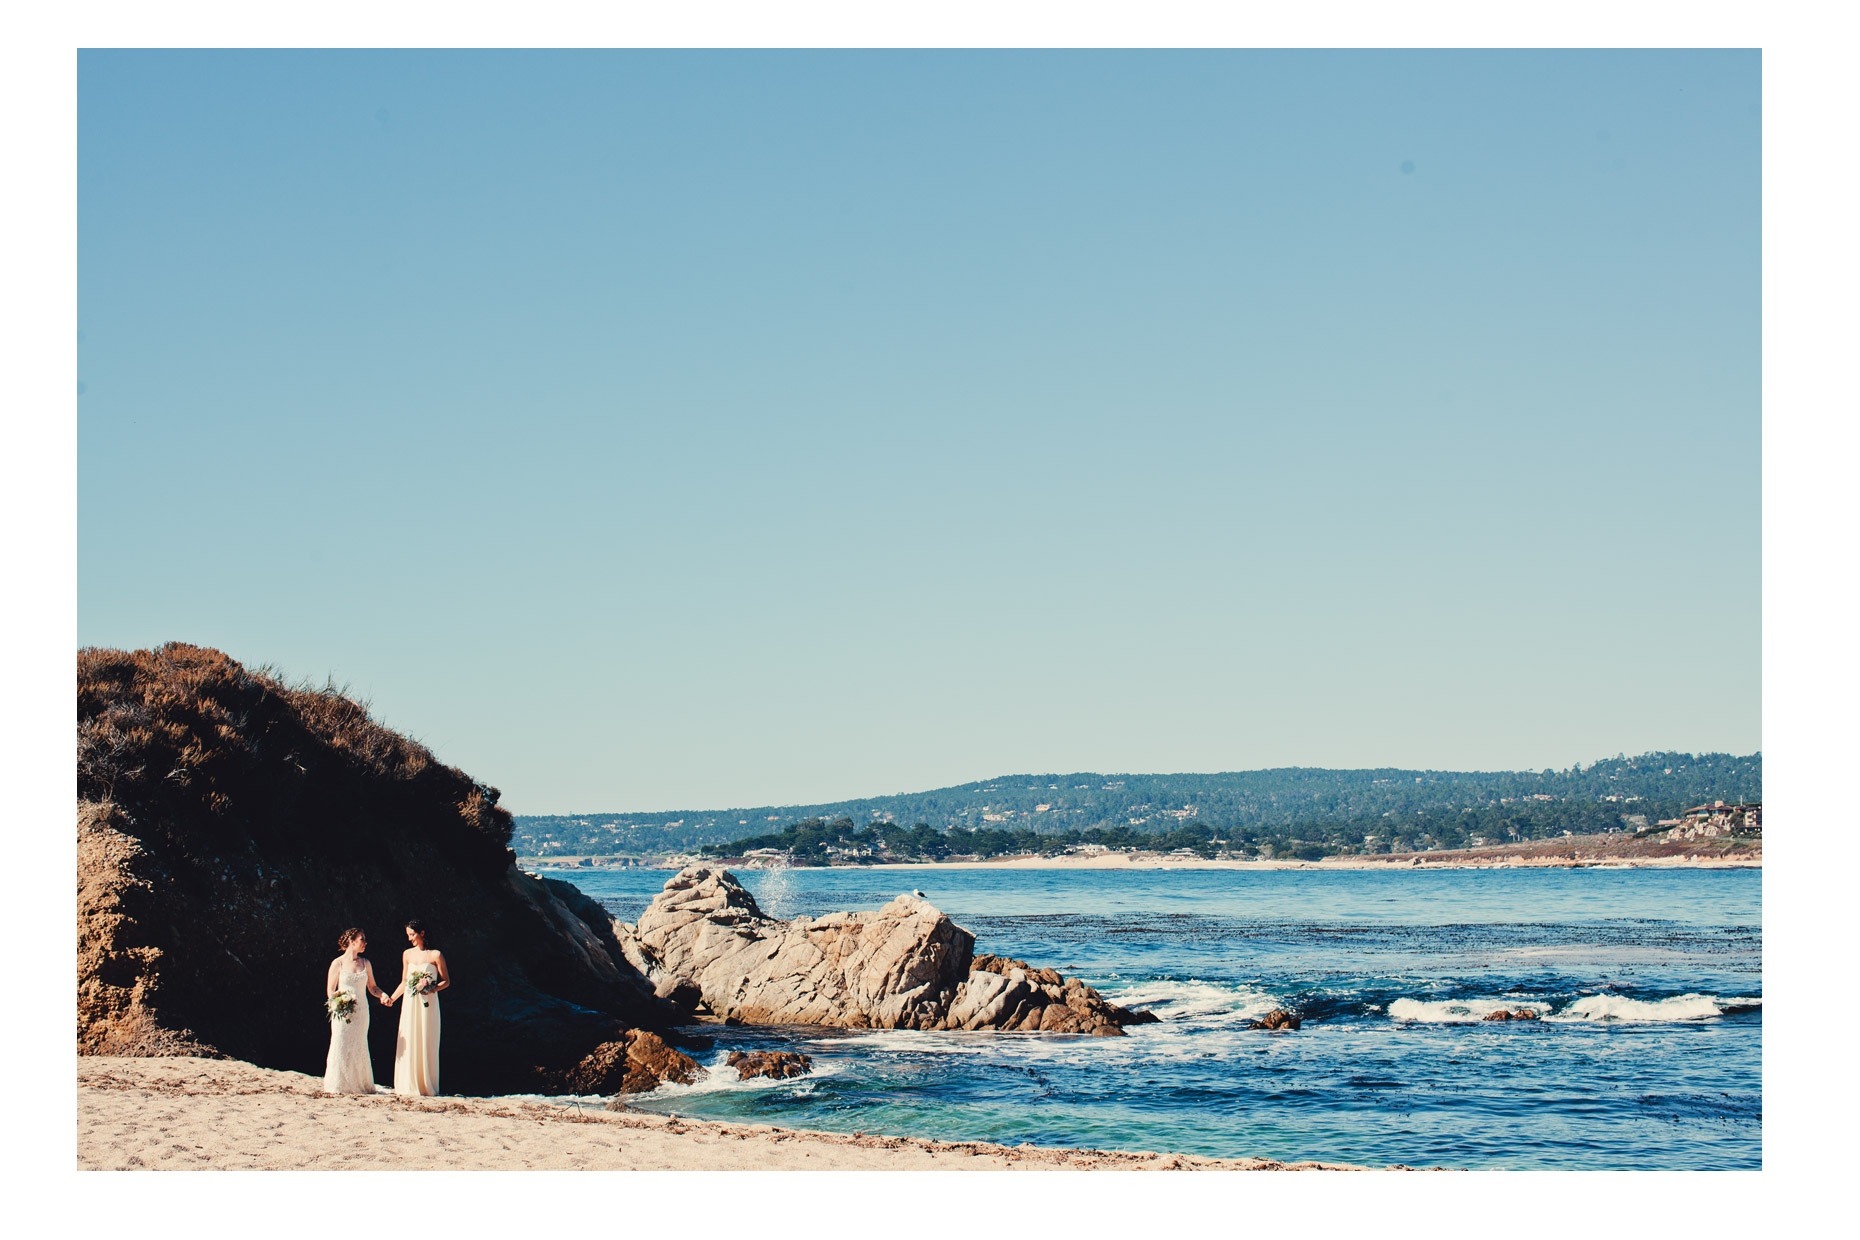 monterey-carmel-by-the-sea-wedding-photographer-pierreolivier-photo